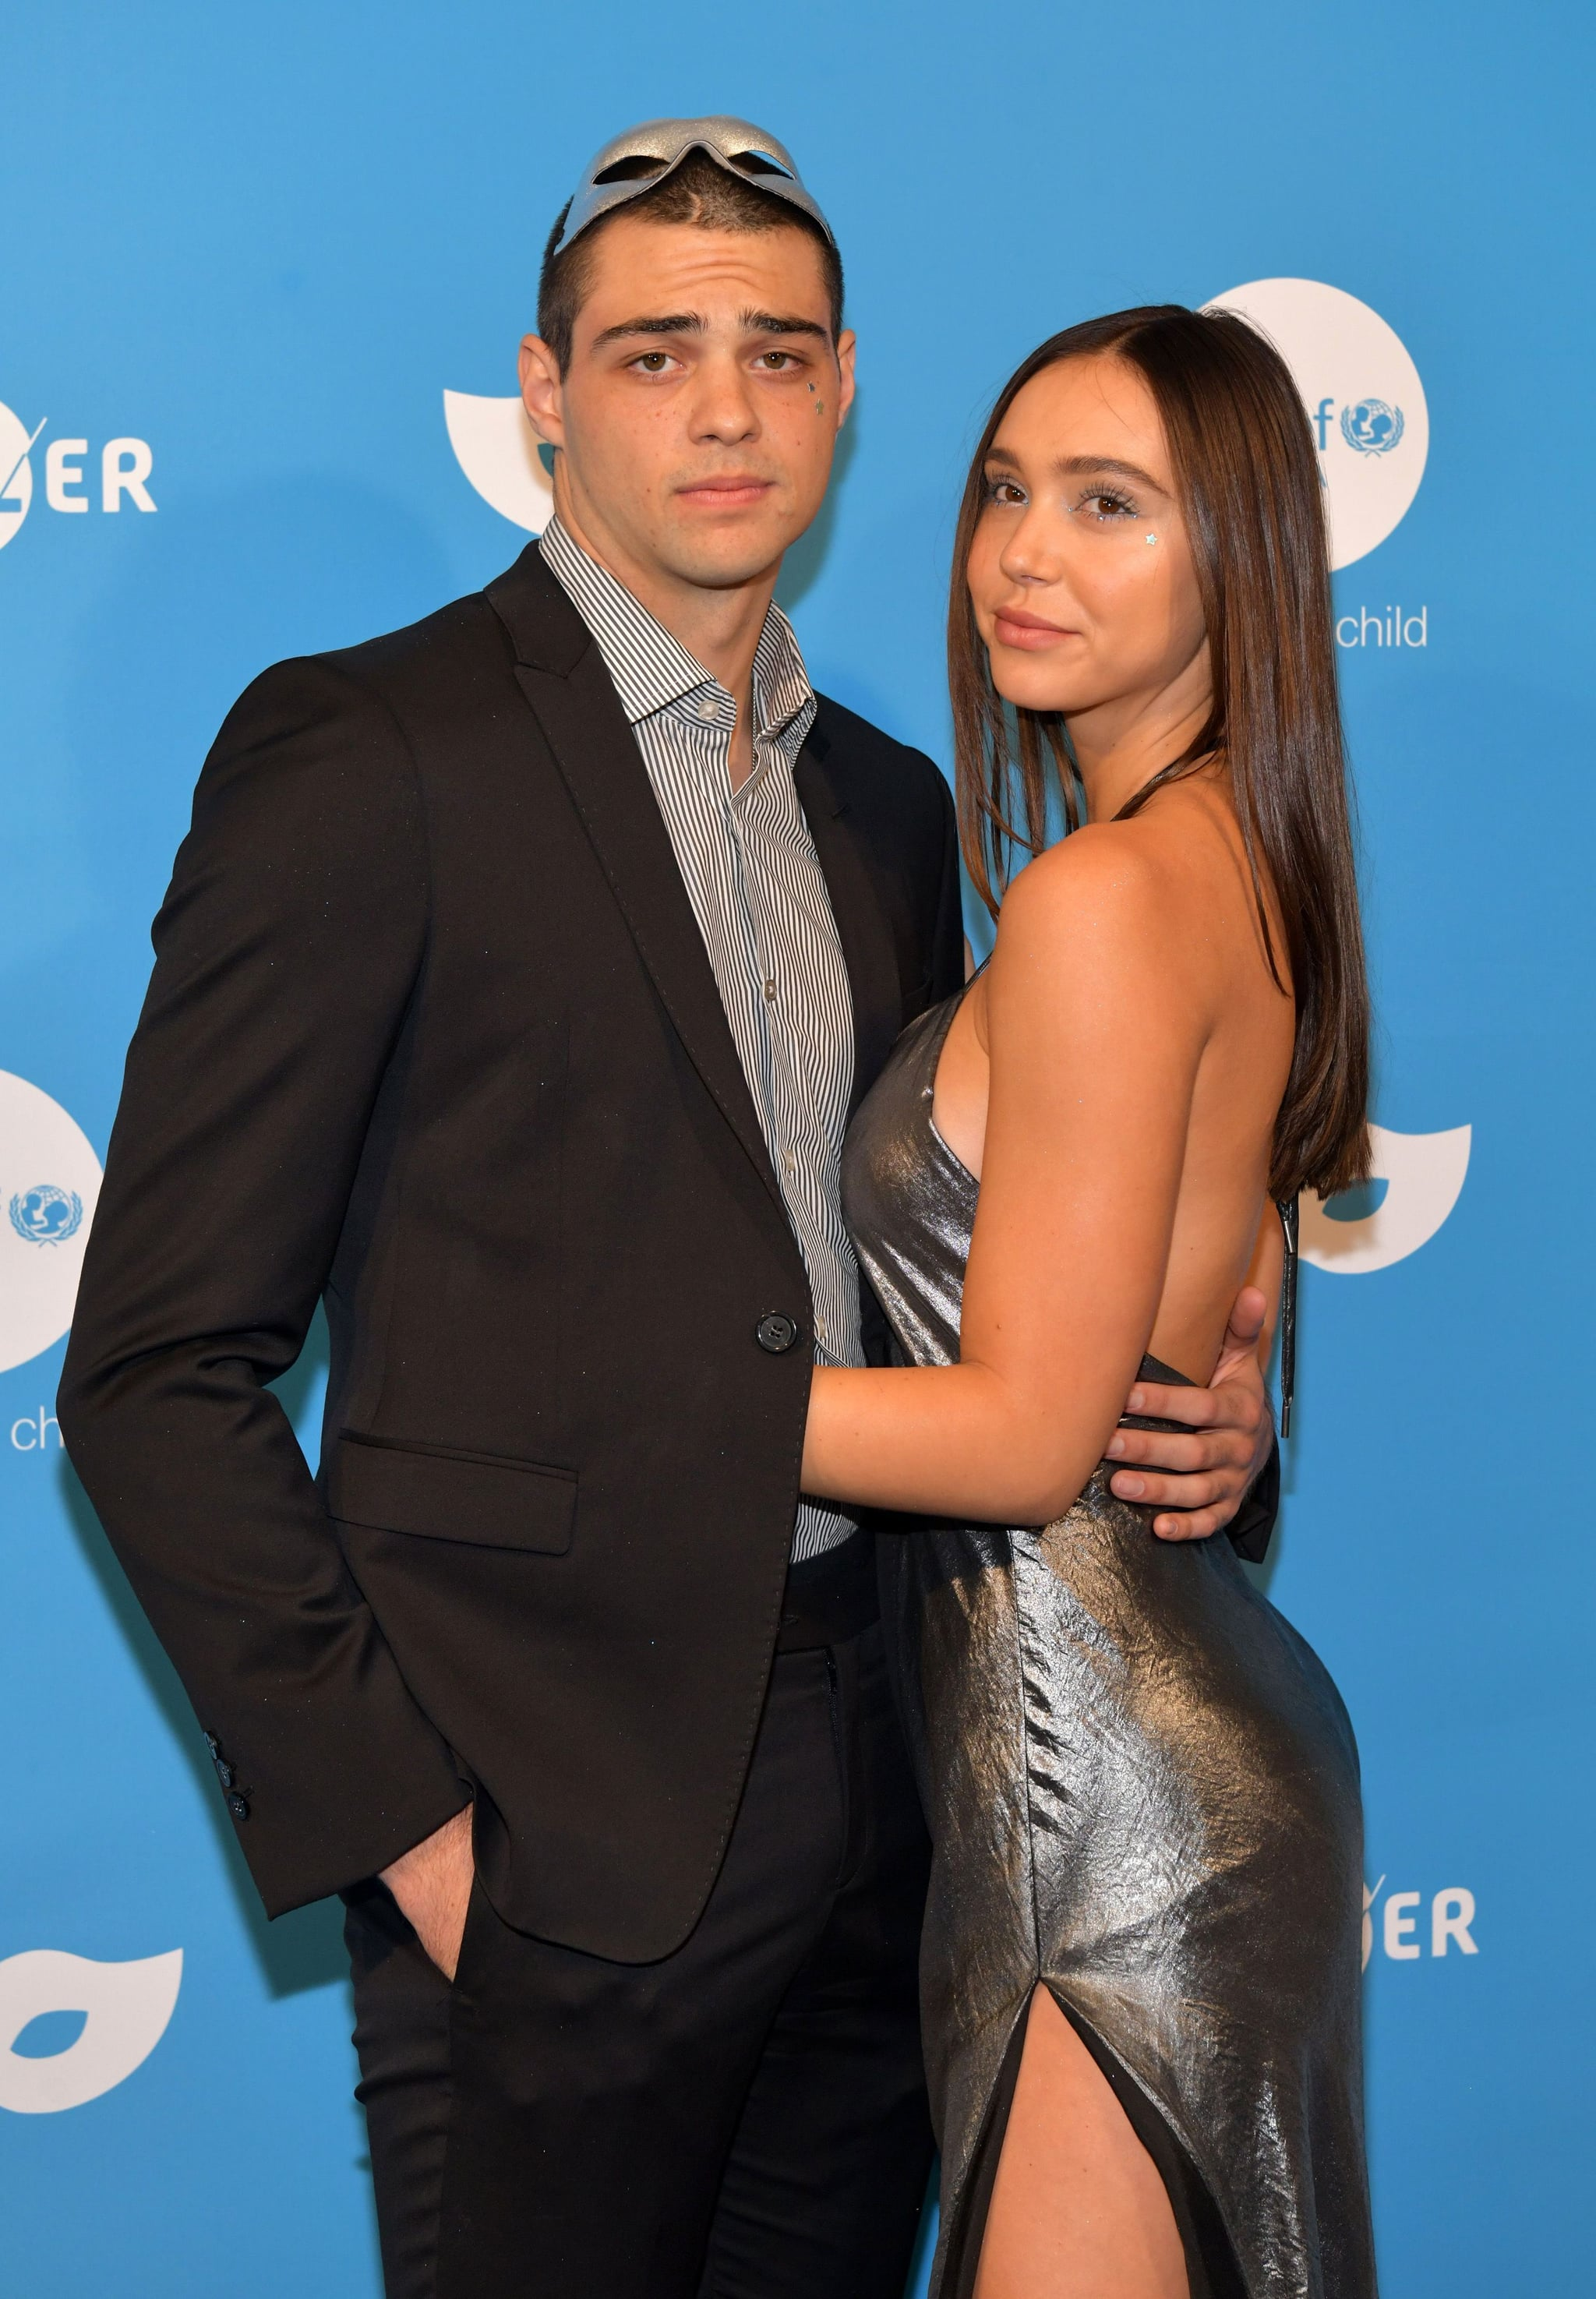 WEST HOLLYWOOD, CALIFORNIA - OCTOBER 26: Noah Centineo and Alexis Ren attend the UNICEF Masquerade Ball at Kimpton La Peer Hotel on October 26, 2019 in West Hollywood, California. (Photo by Rodin Eckenroth/FilmMagic)